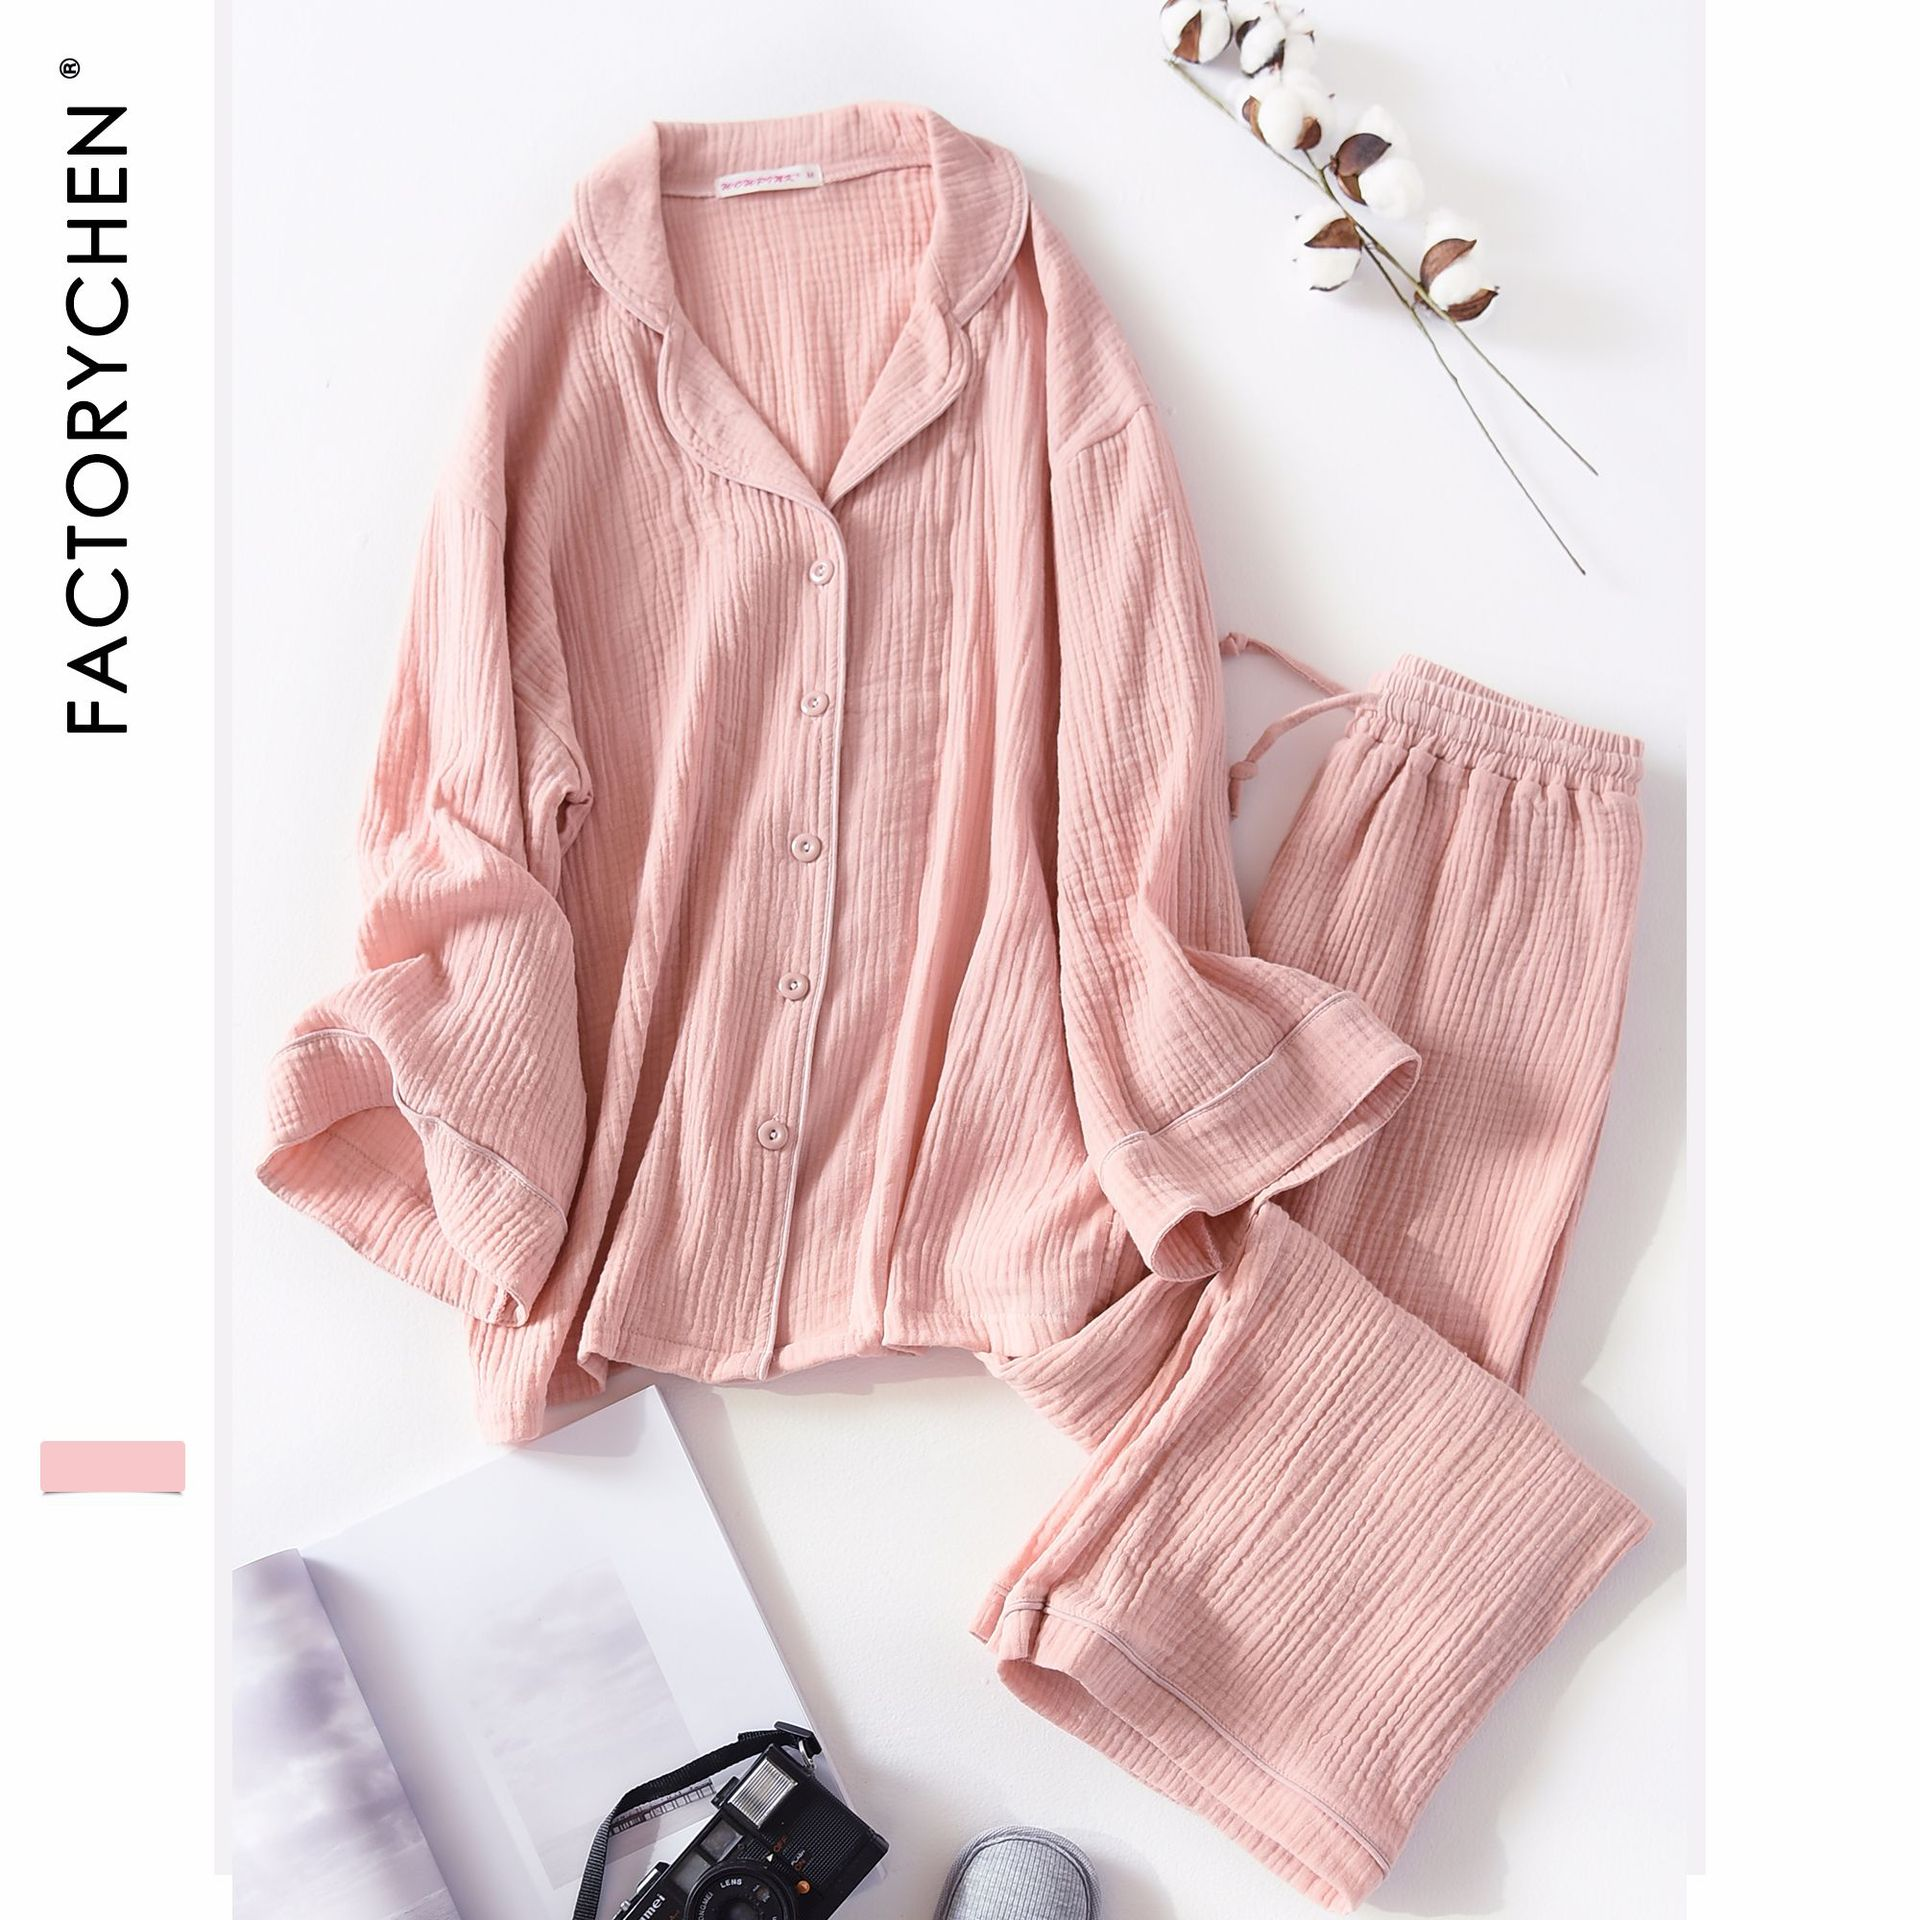 New Spring&autumn Loose Lazy Soft Fold Cotton Lapel Suit Women Long Sleeve Sexy   Pajamas     Set   Female Night Gown Home Sleepwear   Set